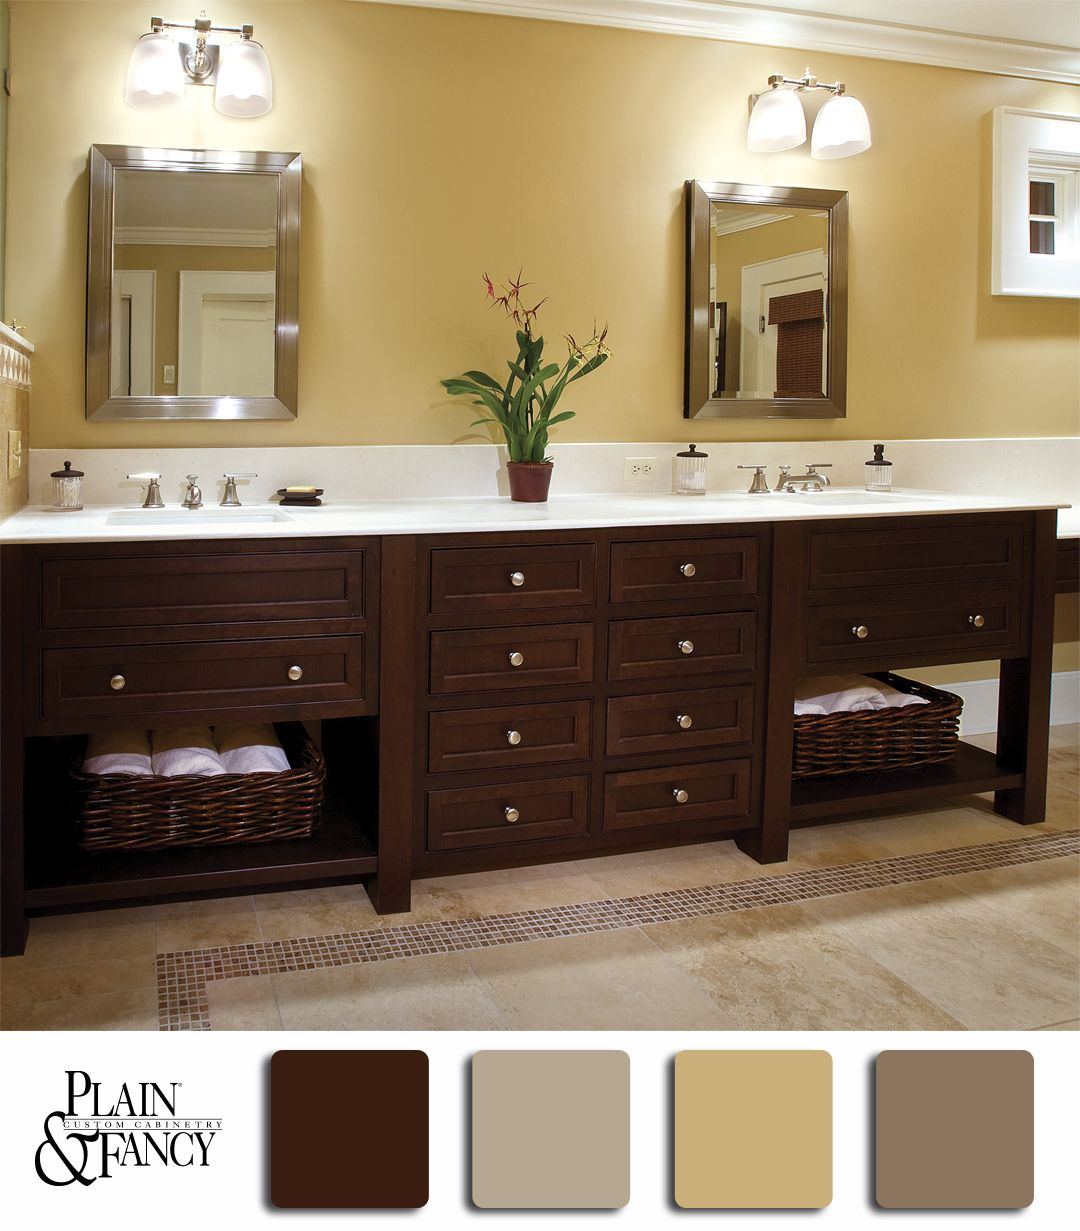 A Lovely Bathroom With A Brown Double Vanity With Yellow Creme